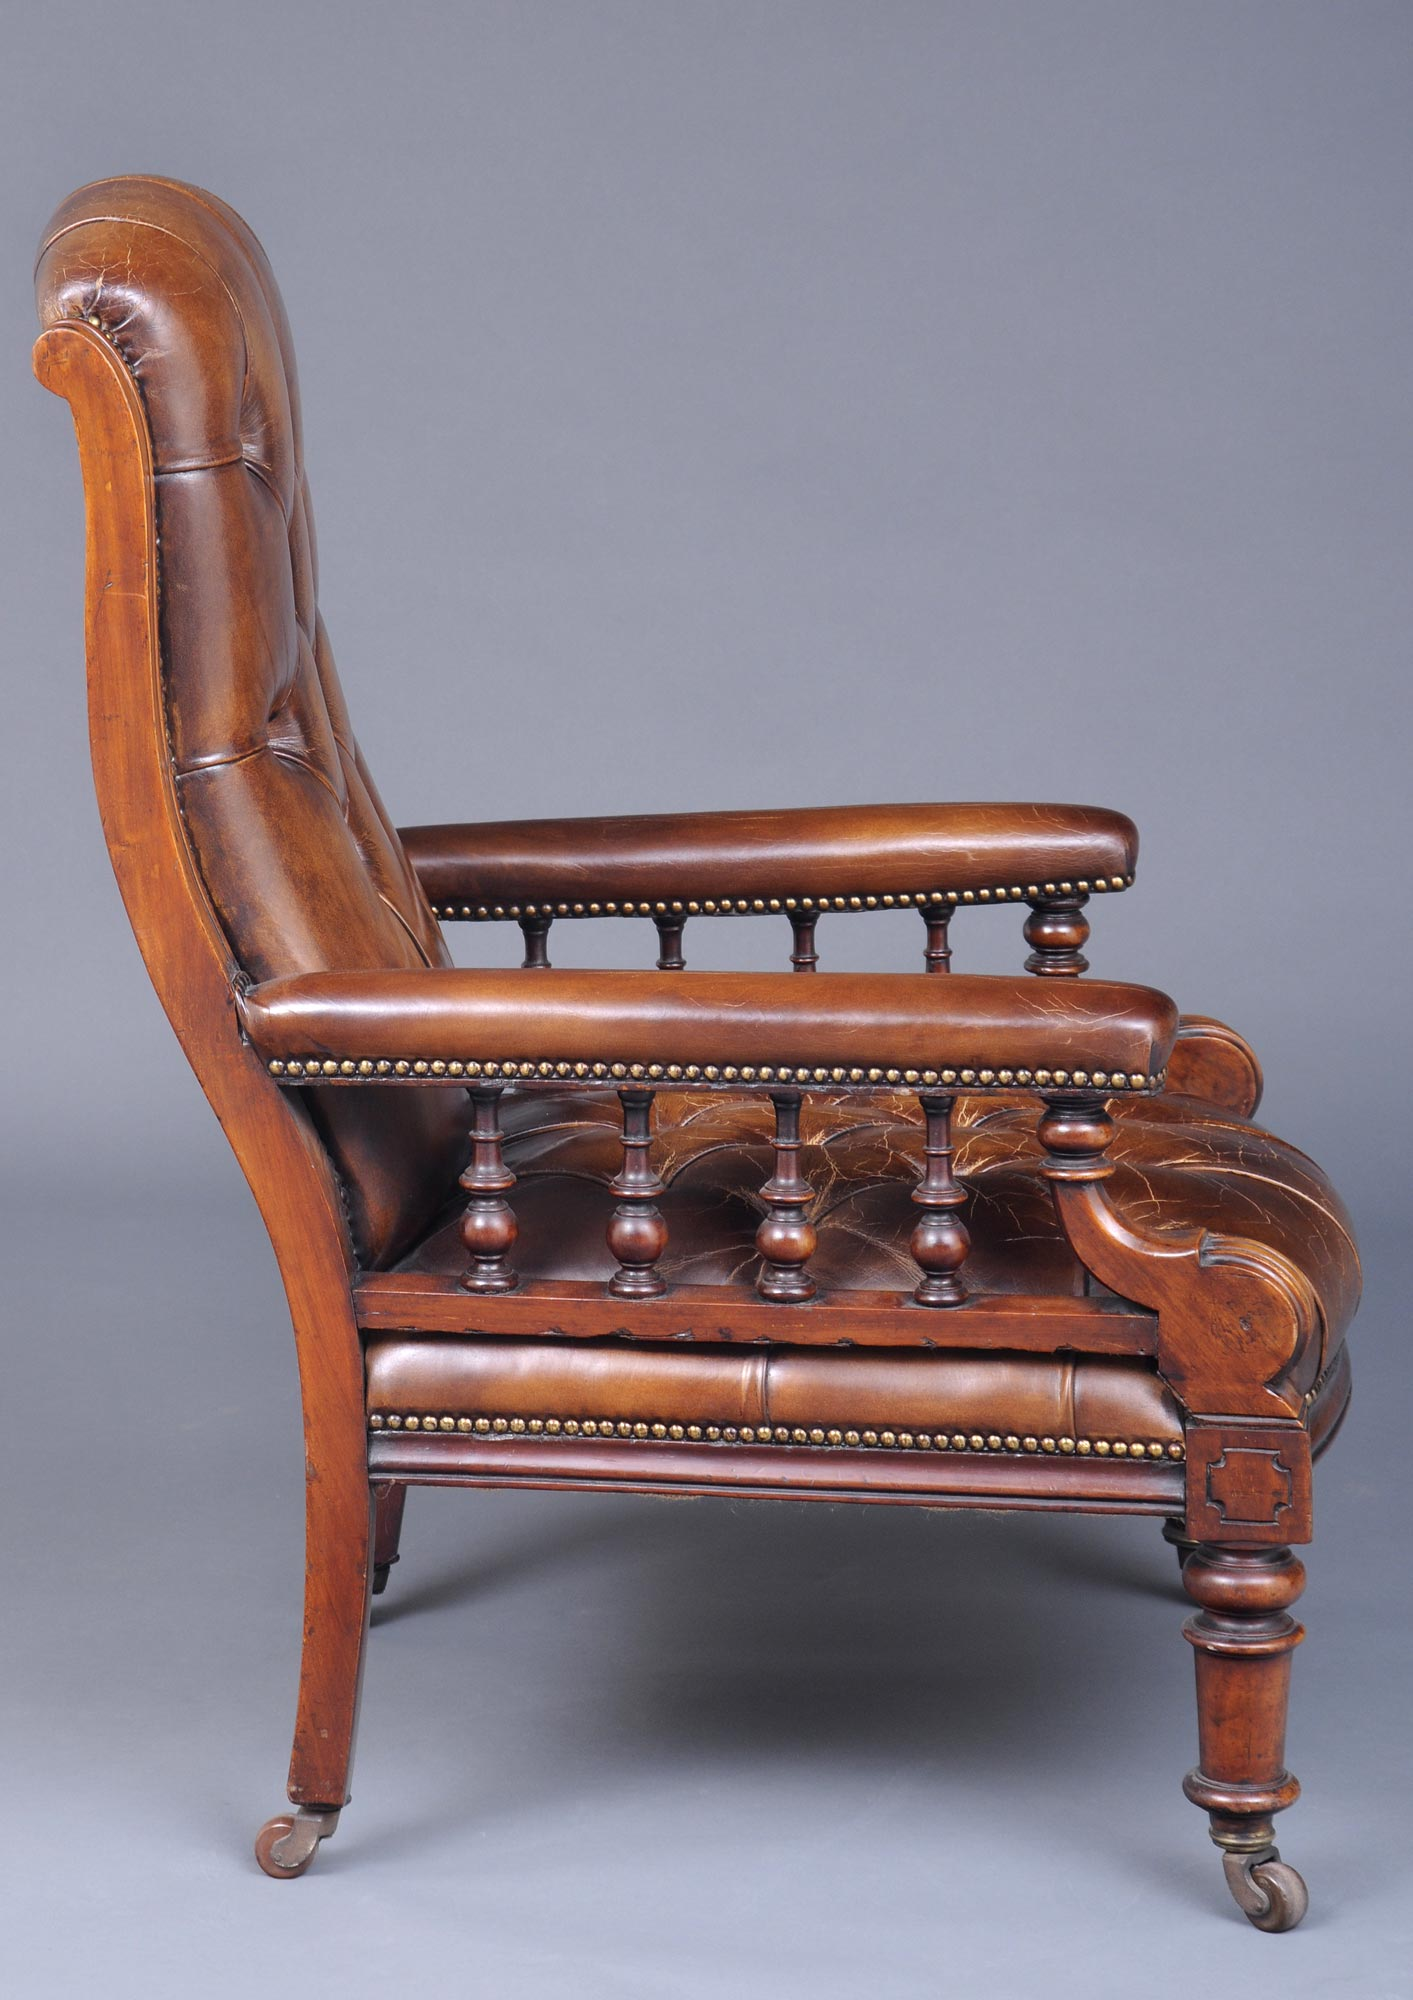 Antique Library Chairs | Antique English Mahogany Library ...